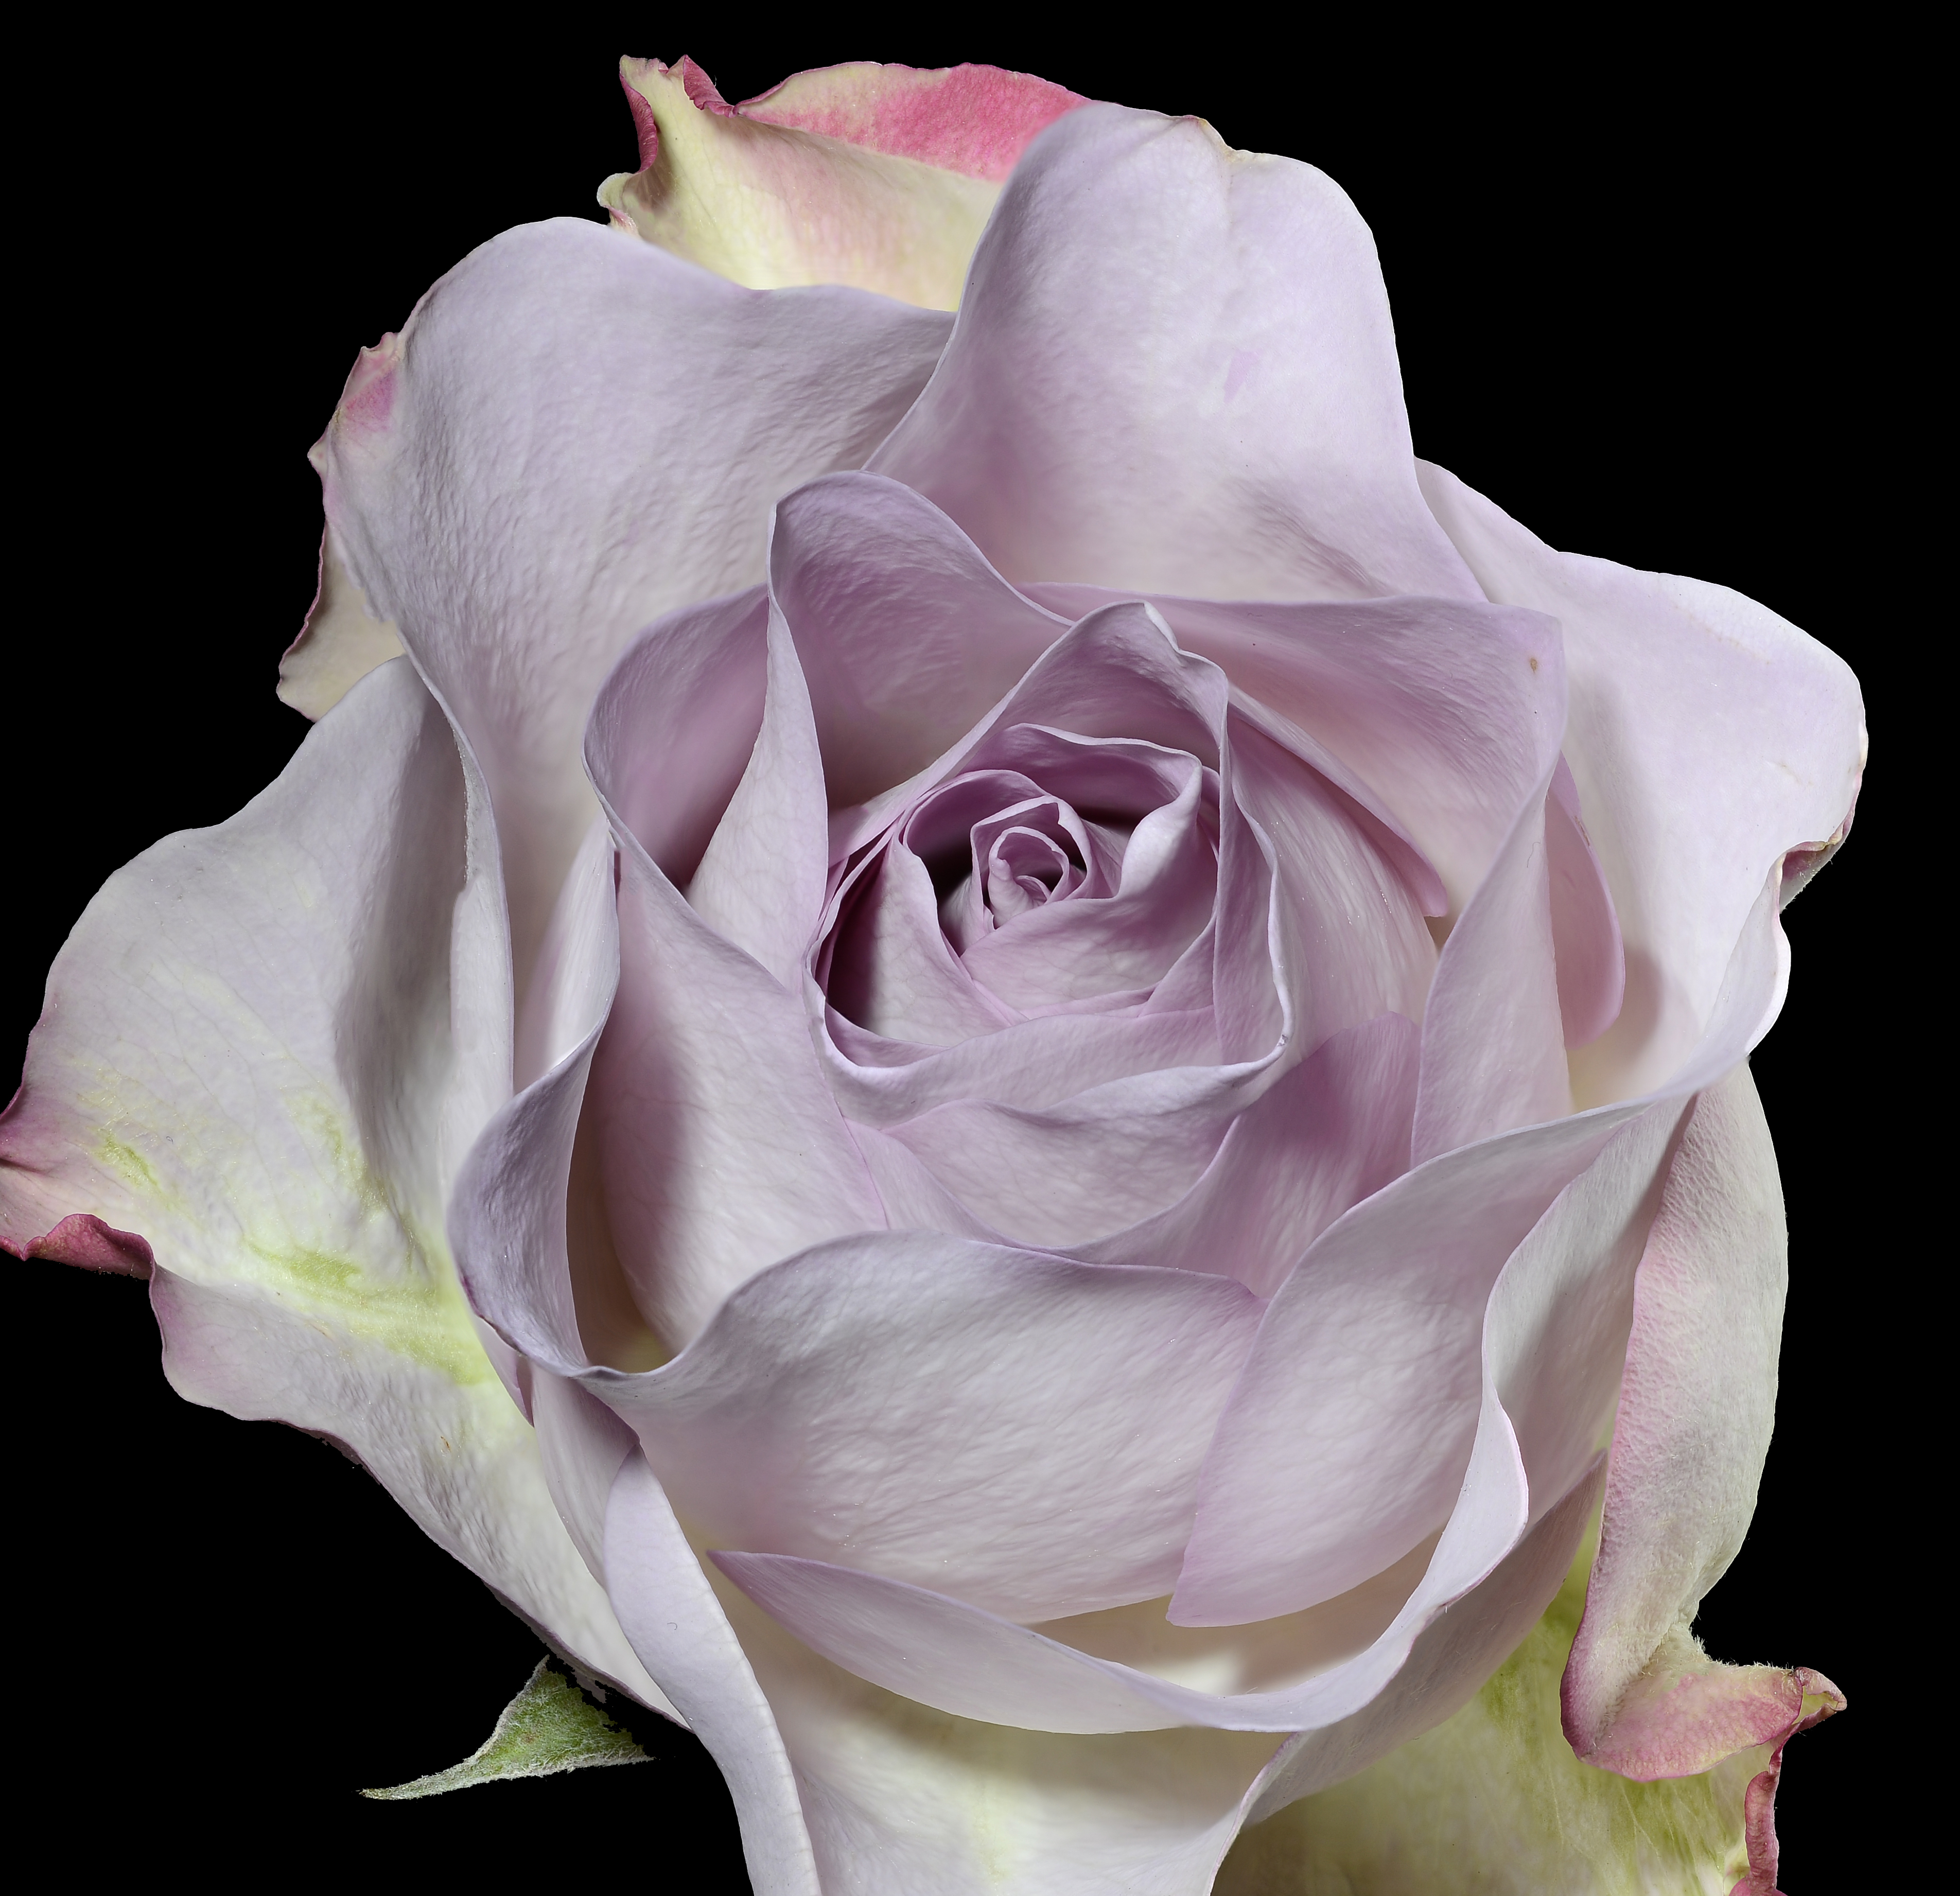 Fine Art Photo rose anthem  focus stacking